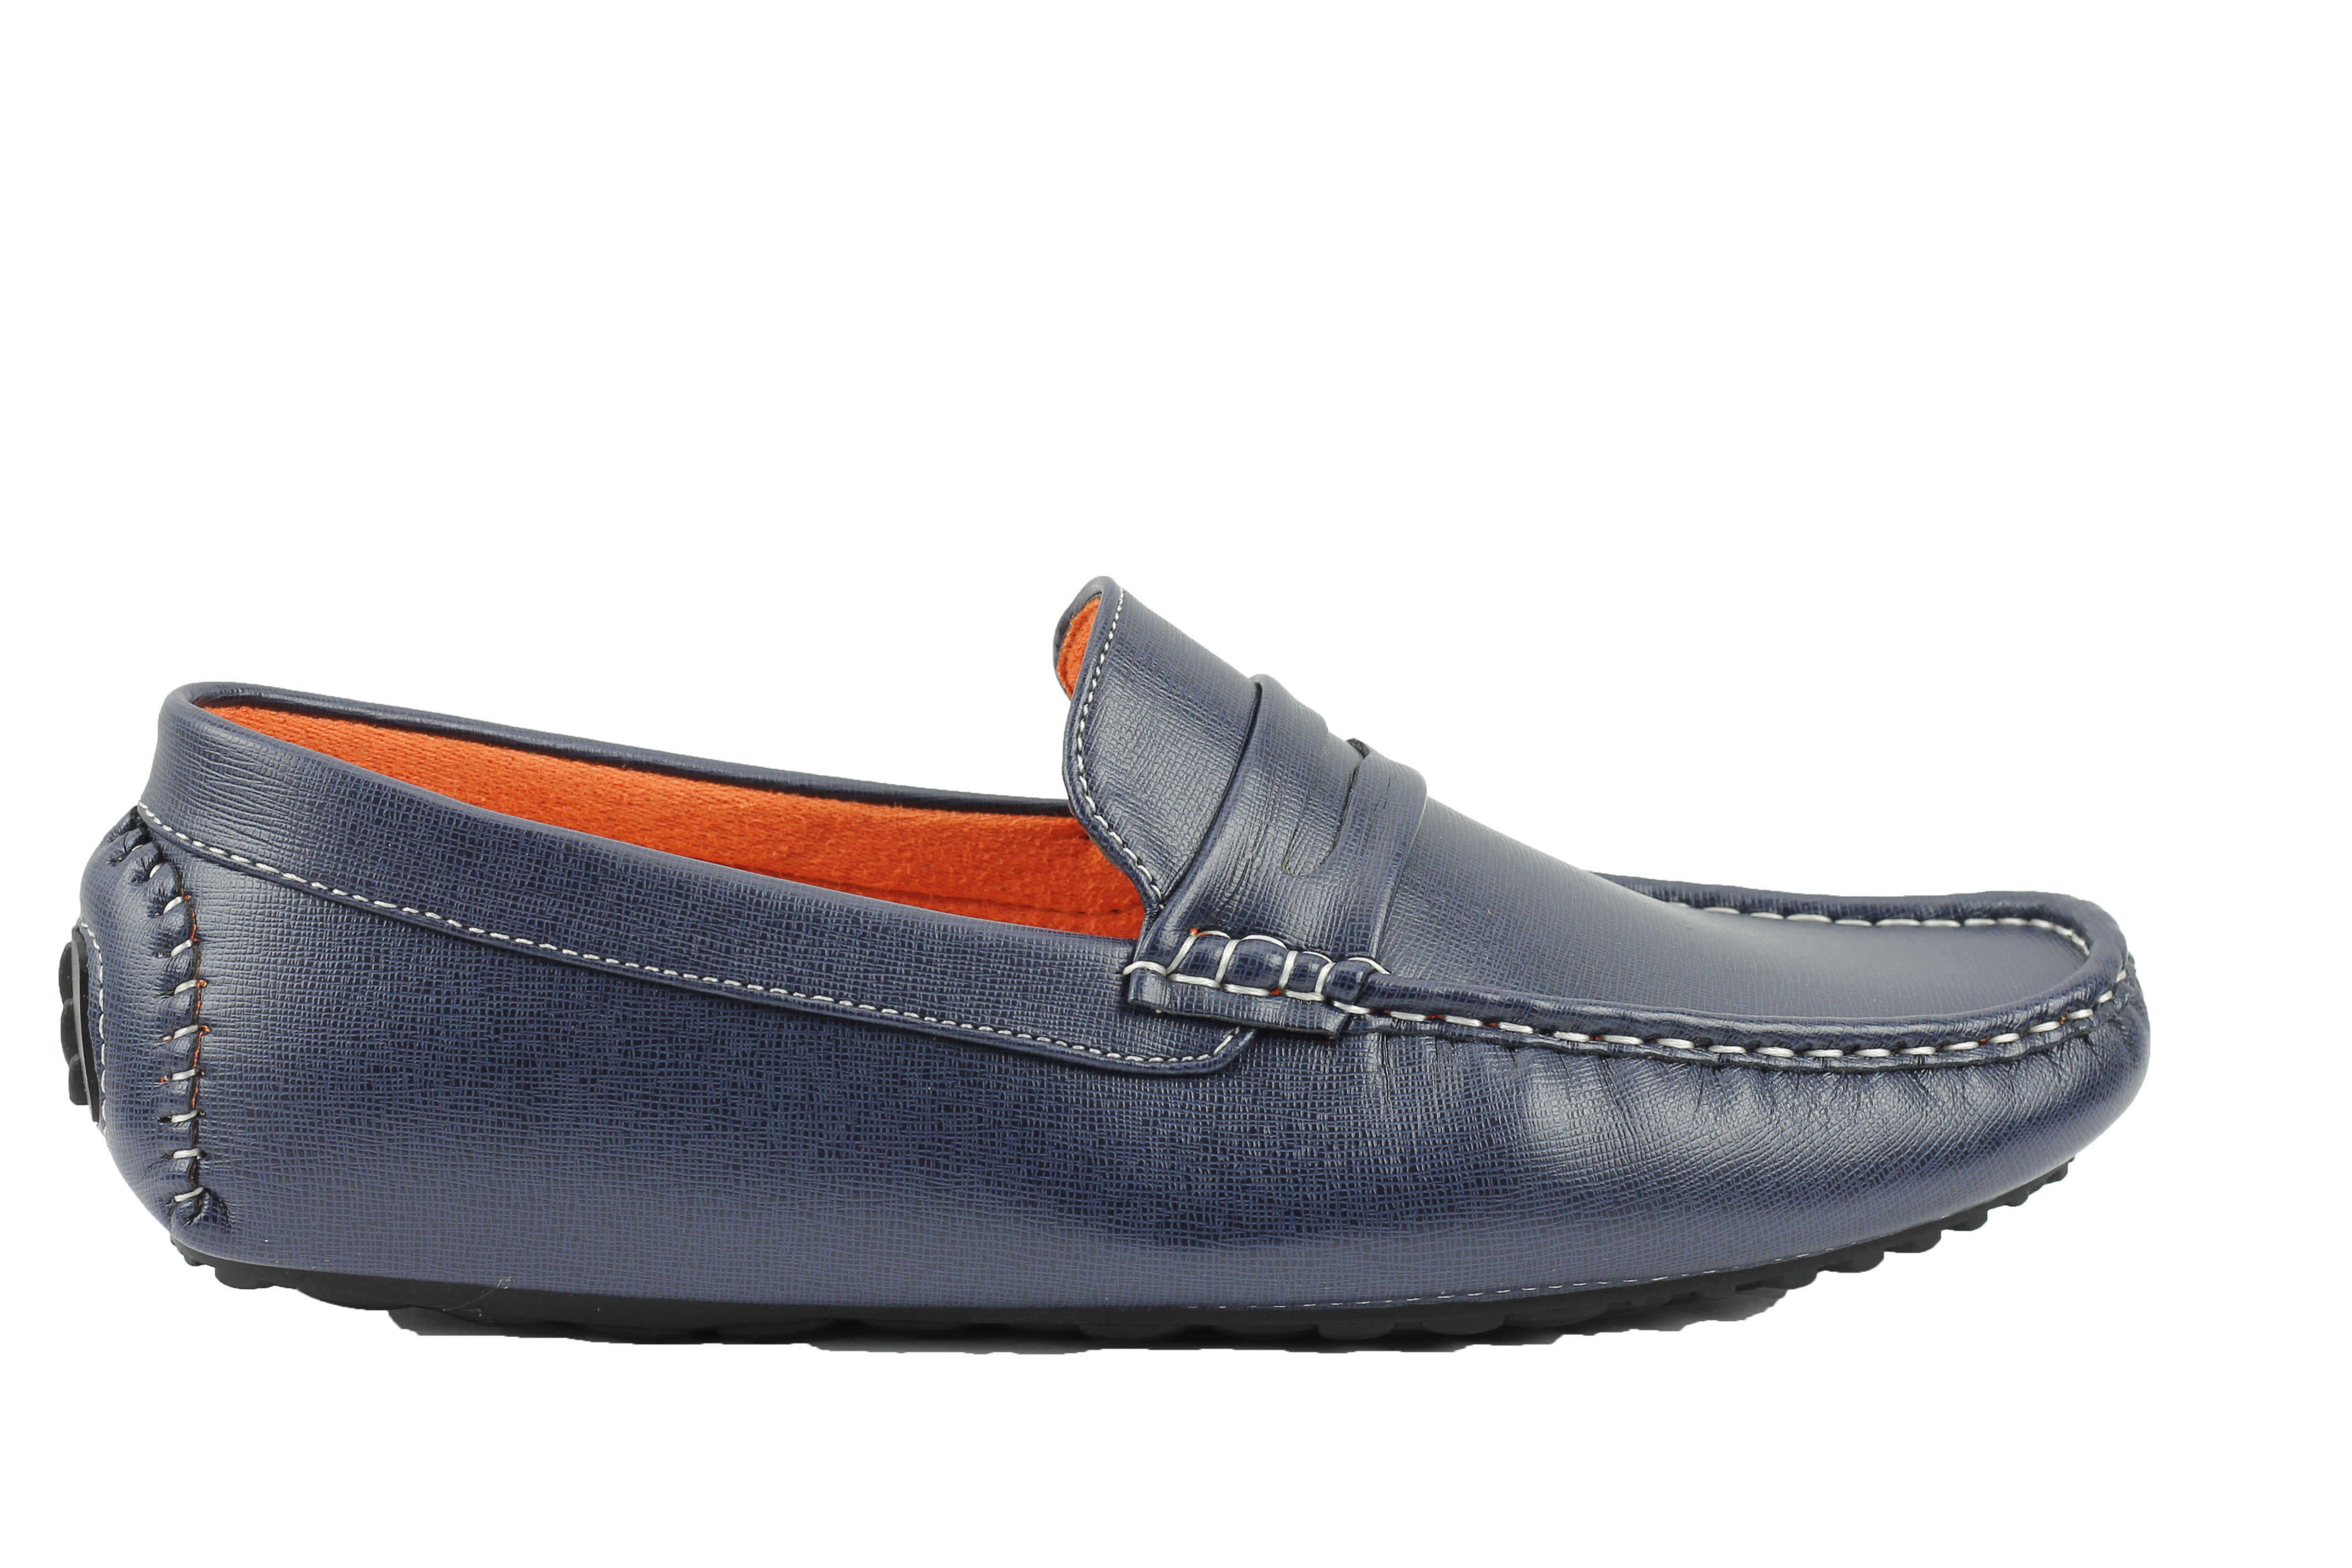 New-Mens-Faux-Leather-Slip-on-Penny-Loafers-Driving-Shoes-UK-Sizes-6-7-8-9-10-11 thumbnail 9